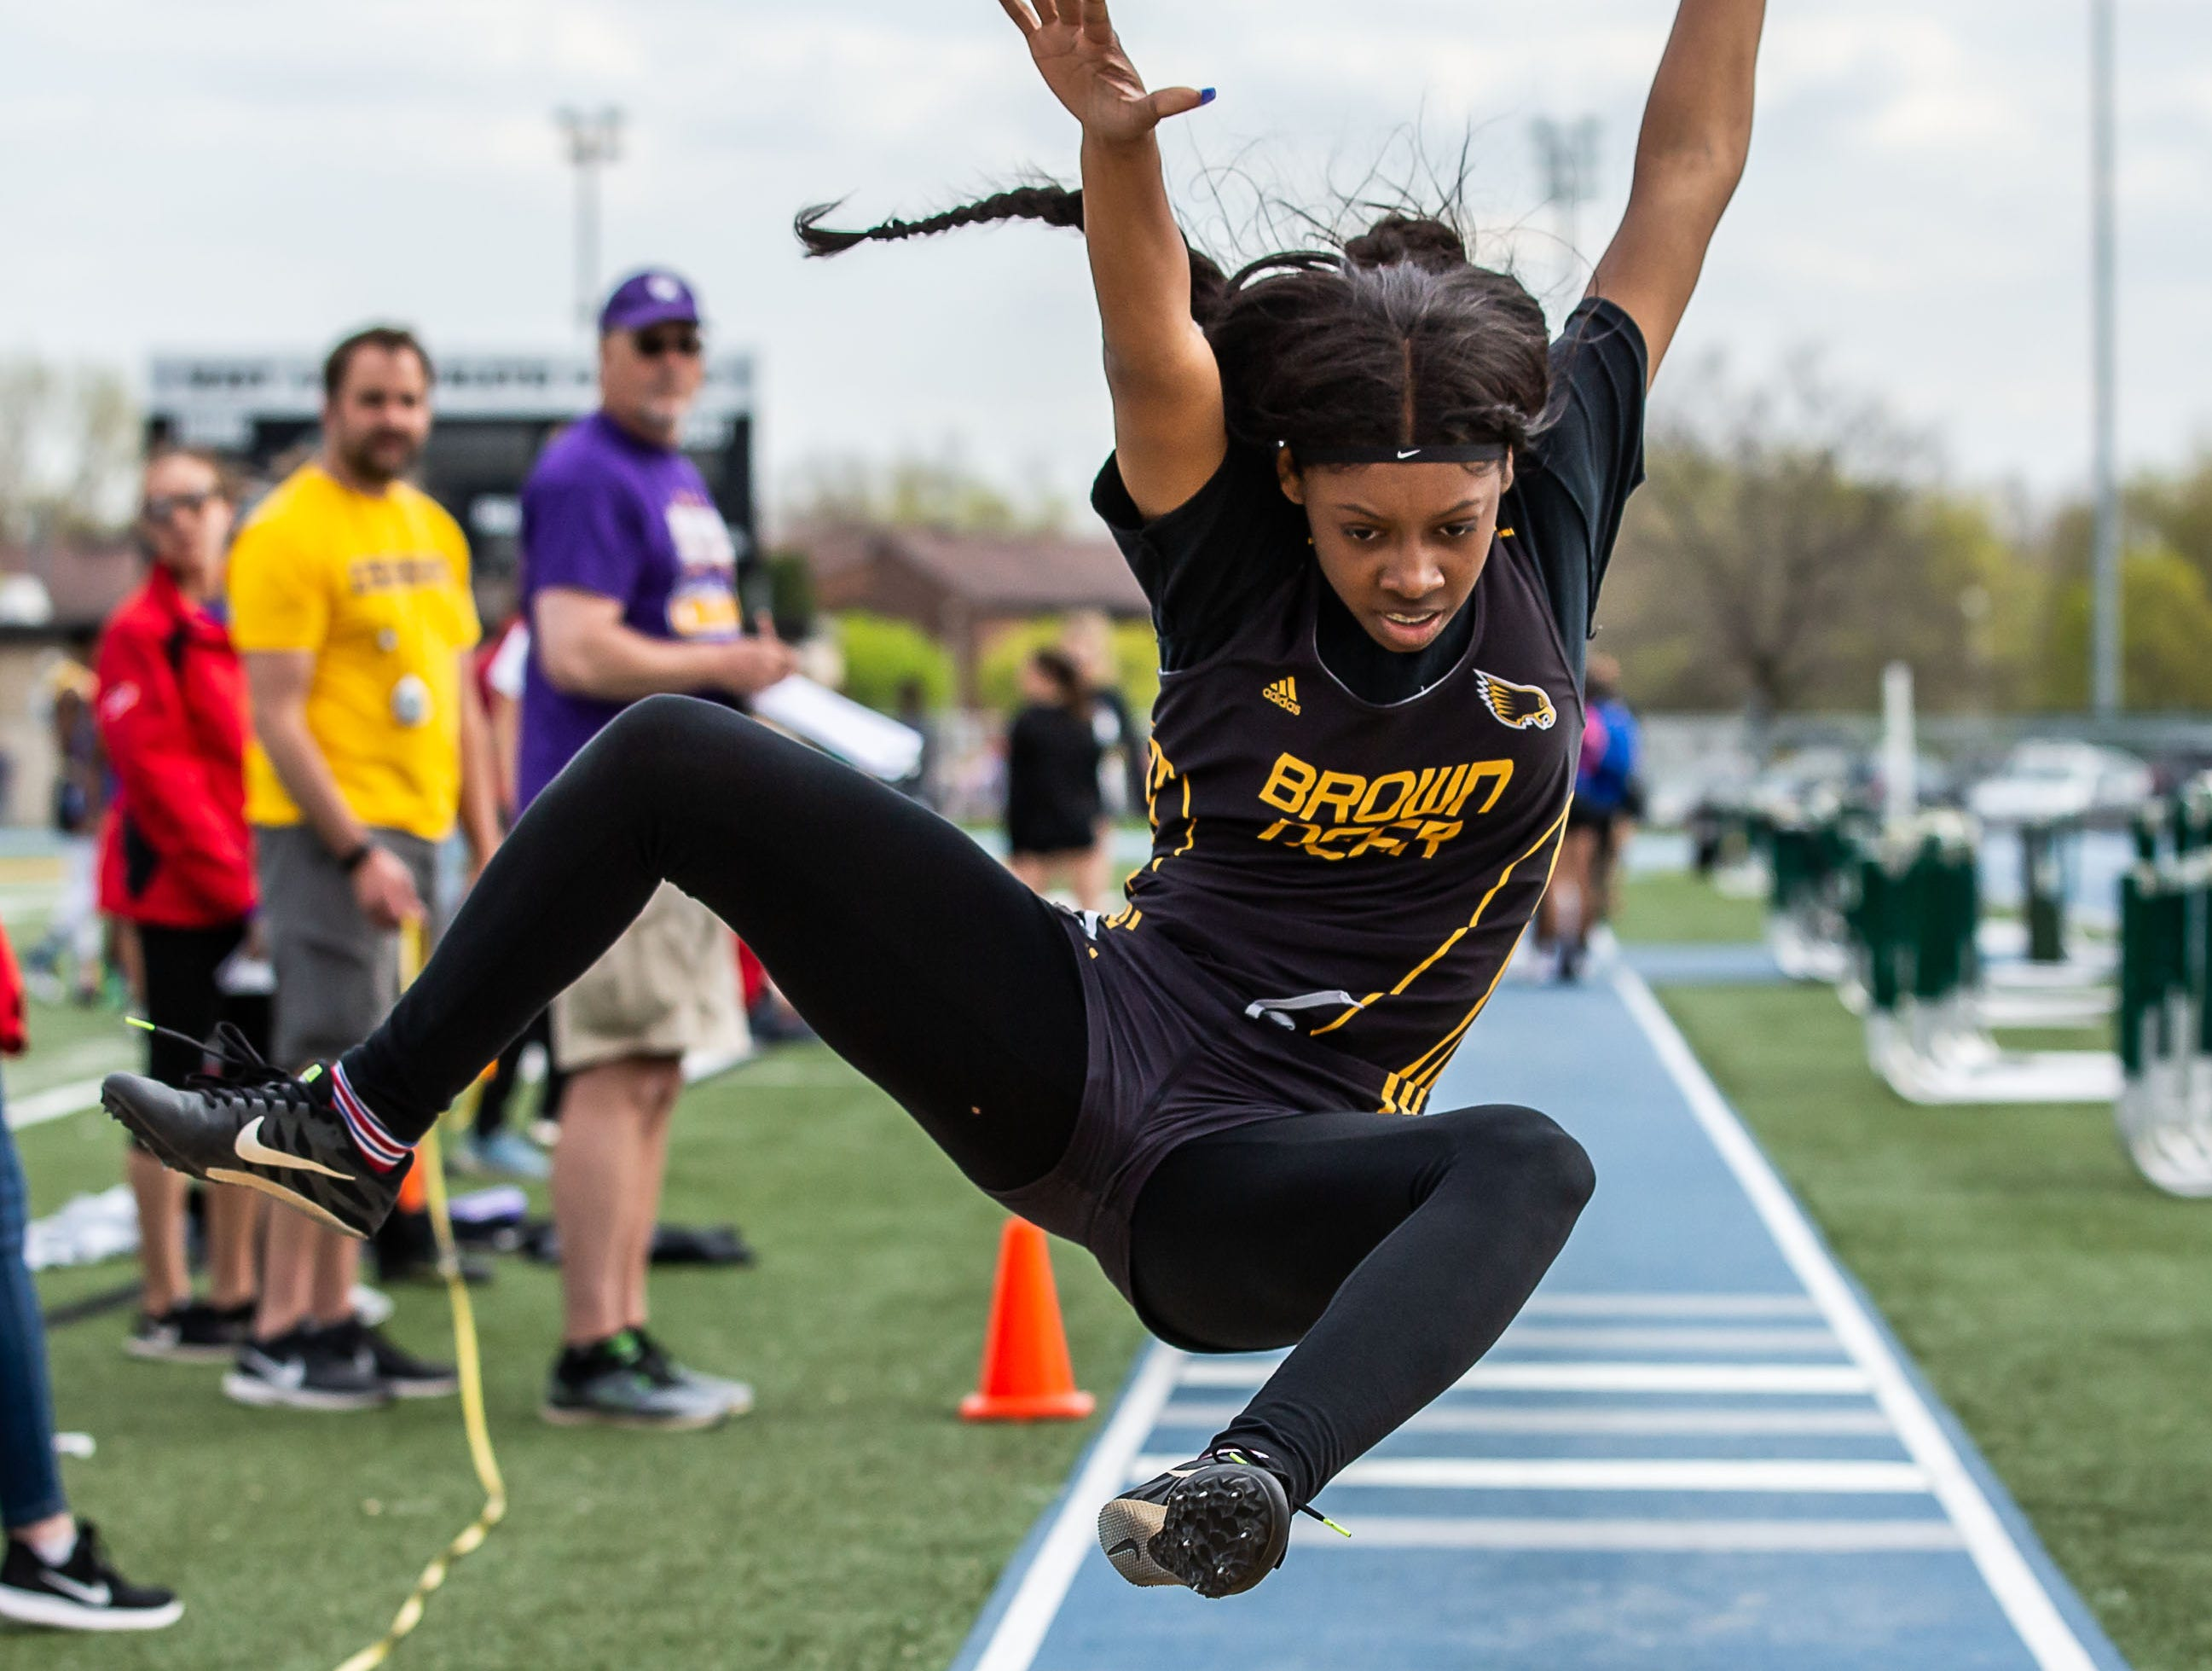 Brown Deer's Ameerah McClain places second in the girls triple jump at the Woodland Conference Track and Field Championships in West Allis on Tuesday, May 14, 2019.